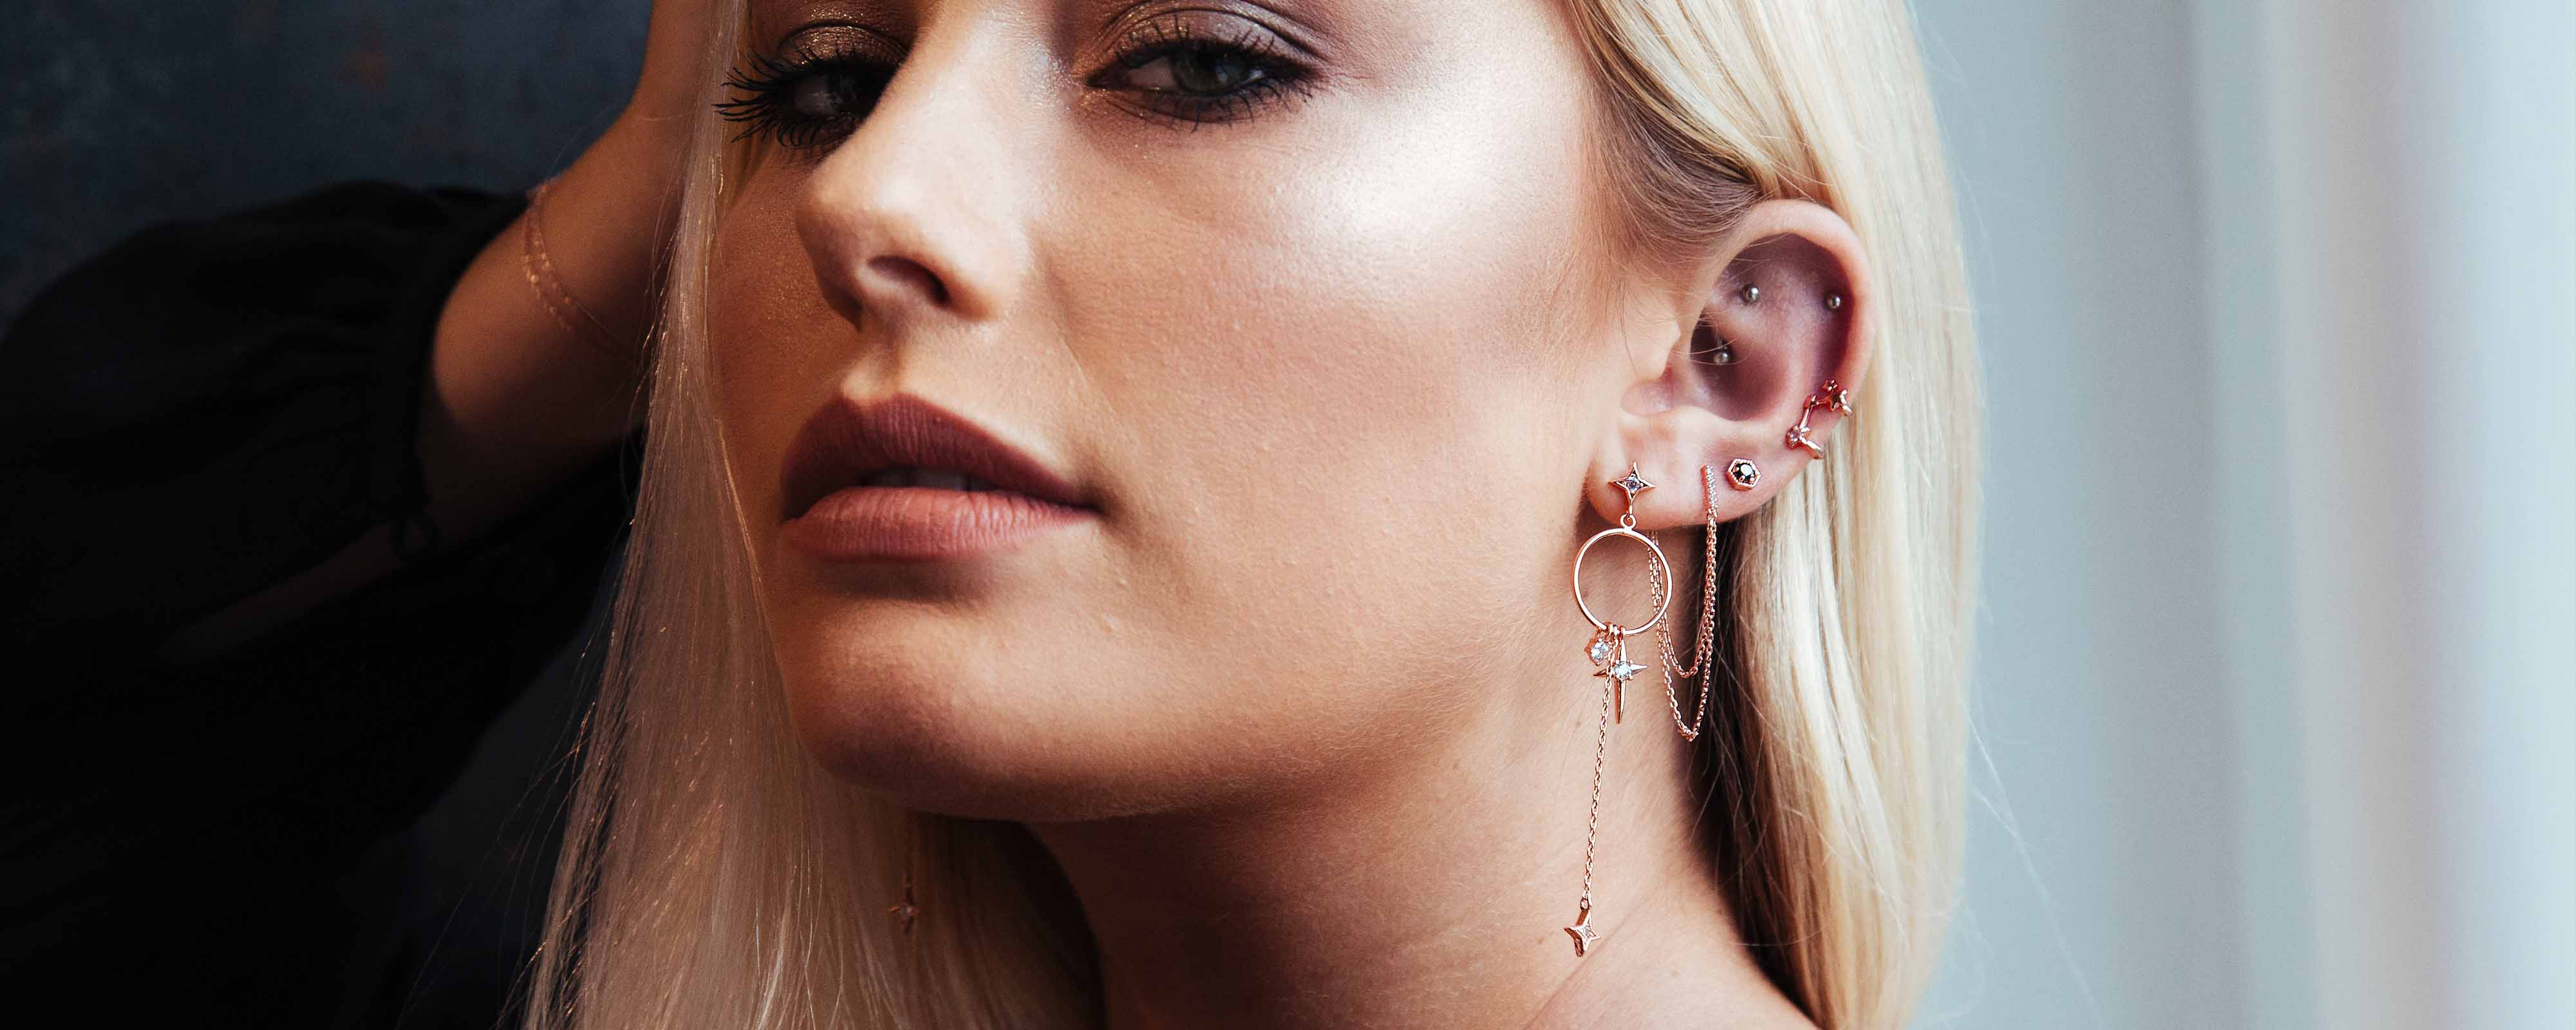 c949b88a630 Curated Ear - Piercing Guide To Crush The Trend & Inspirations ...